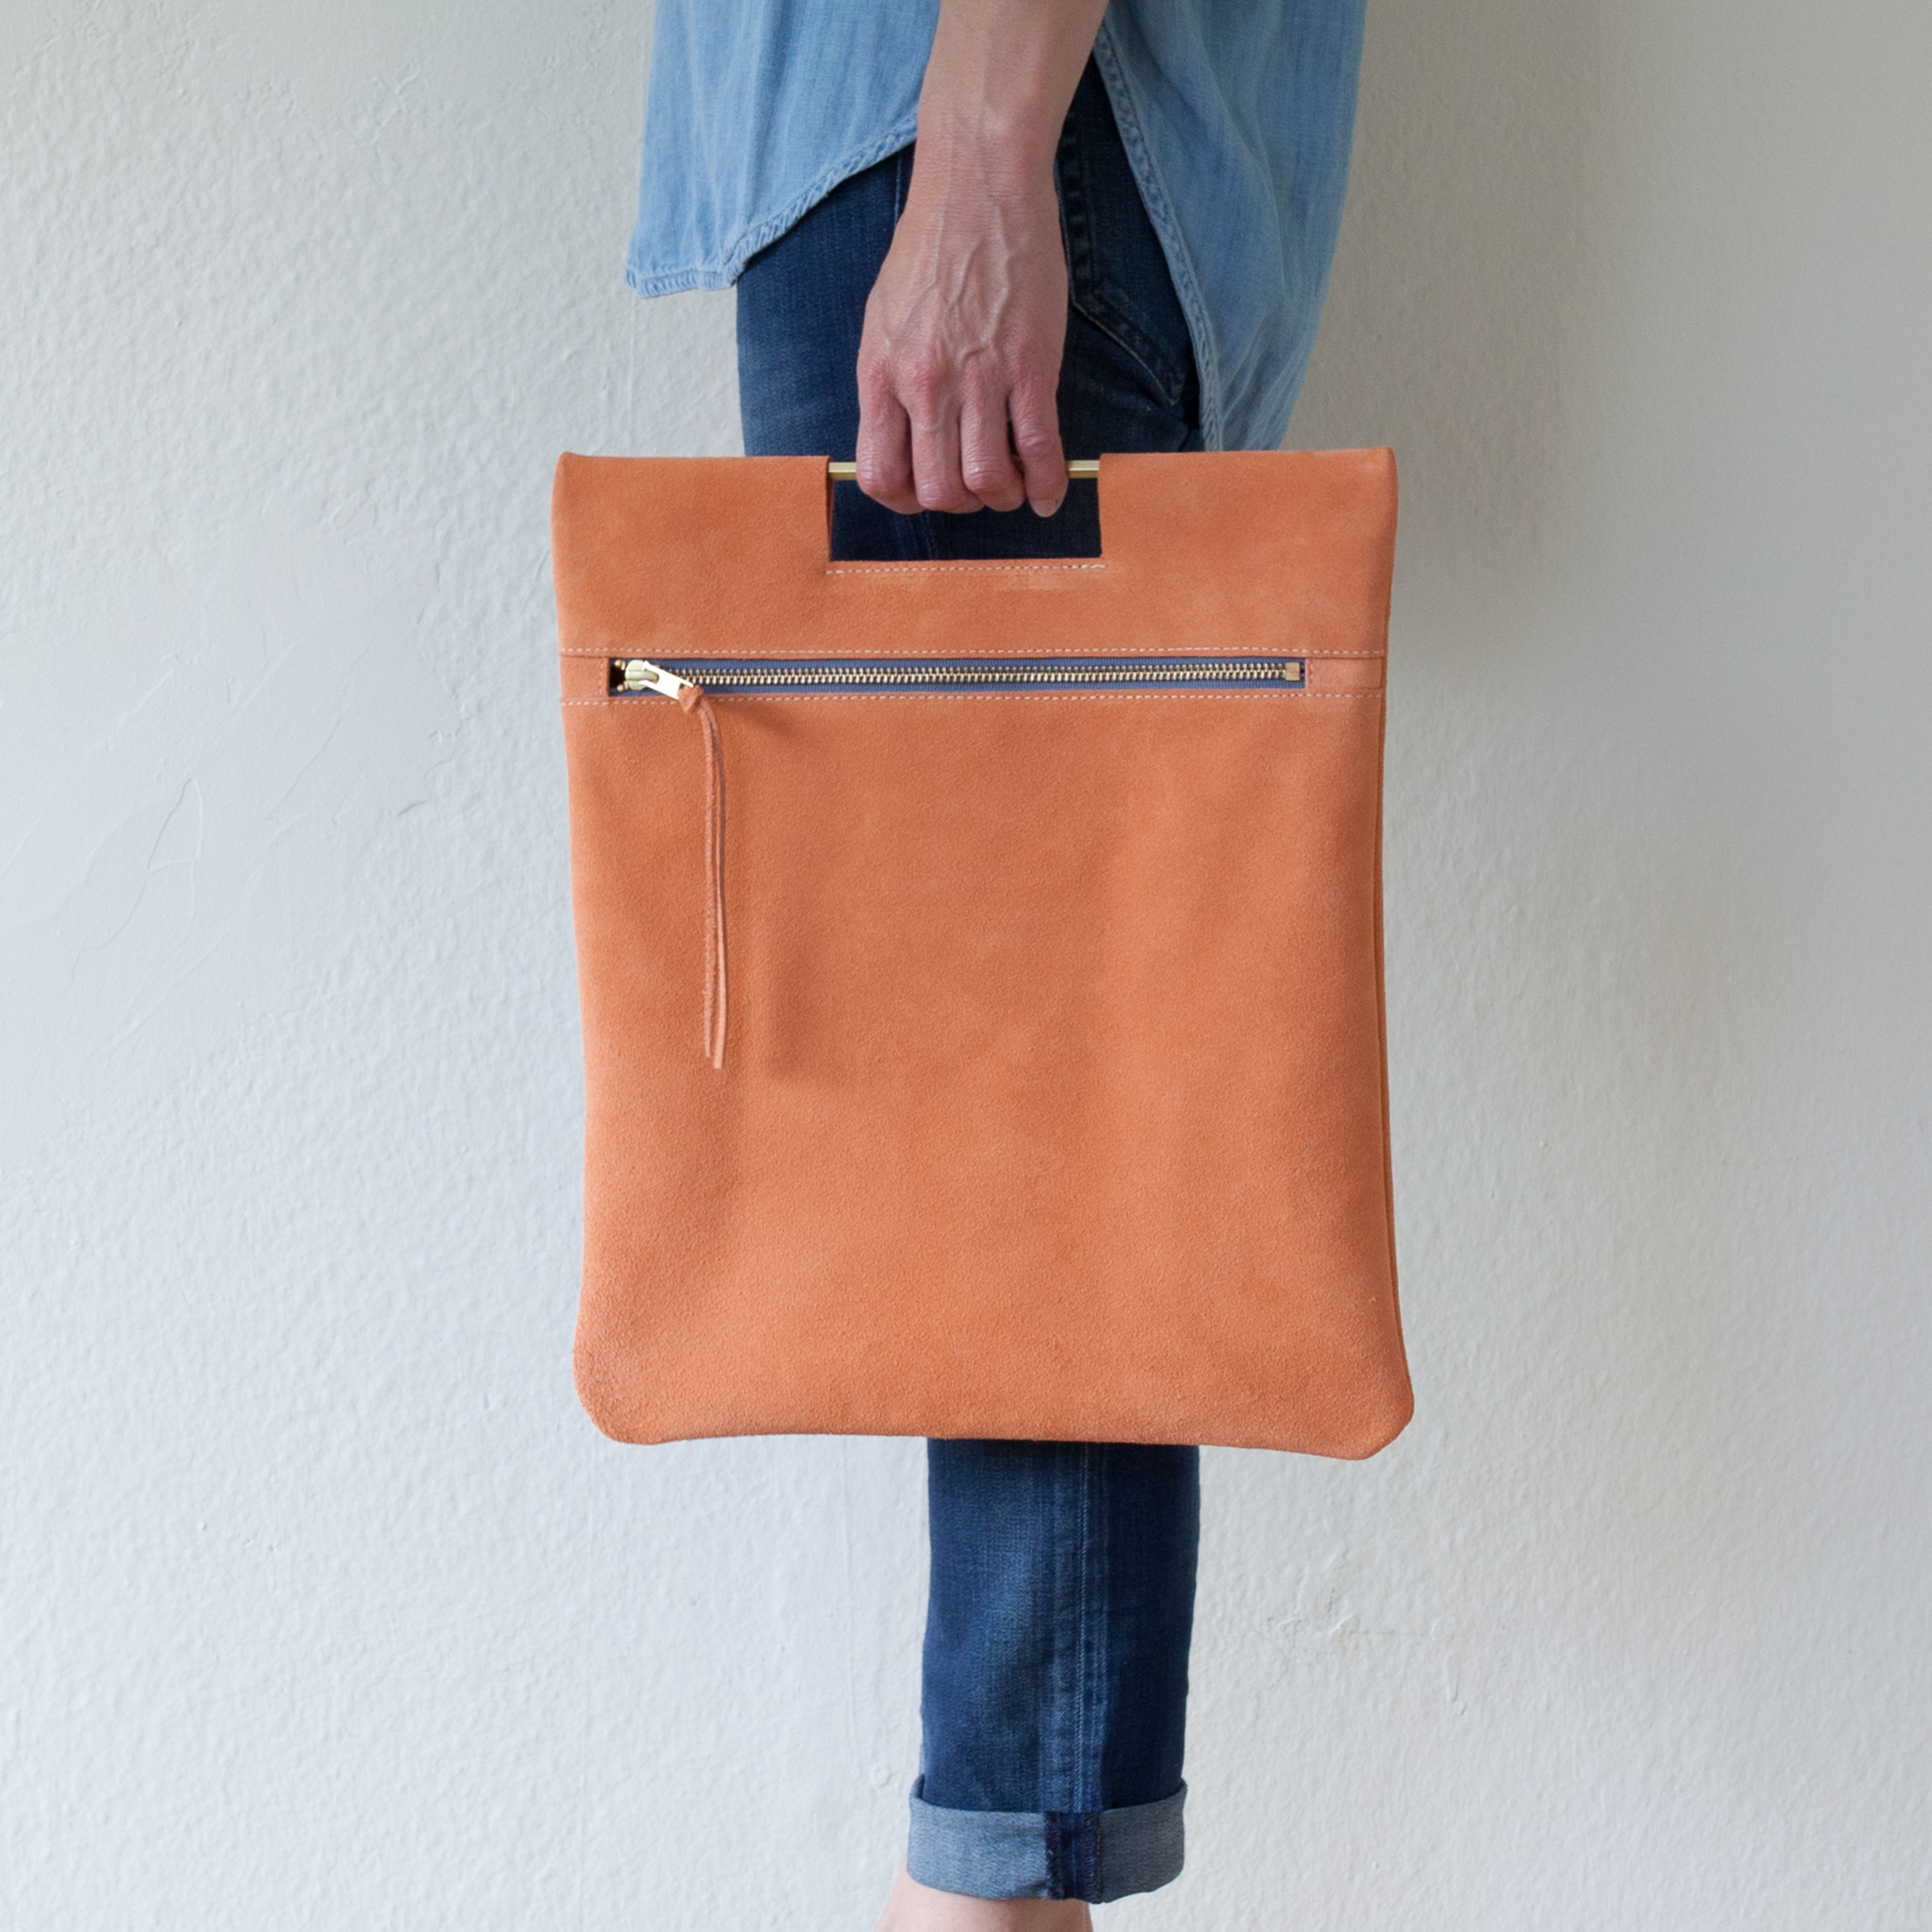 goodwestco-hex-bag-peach-suede3.jpg